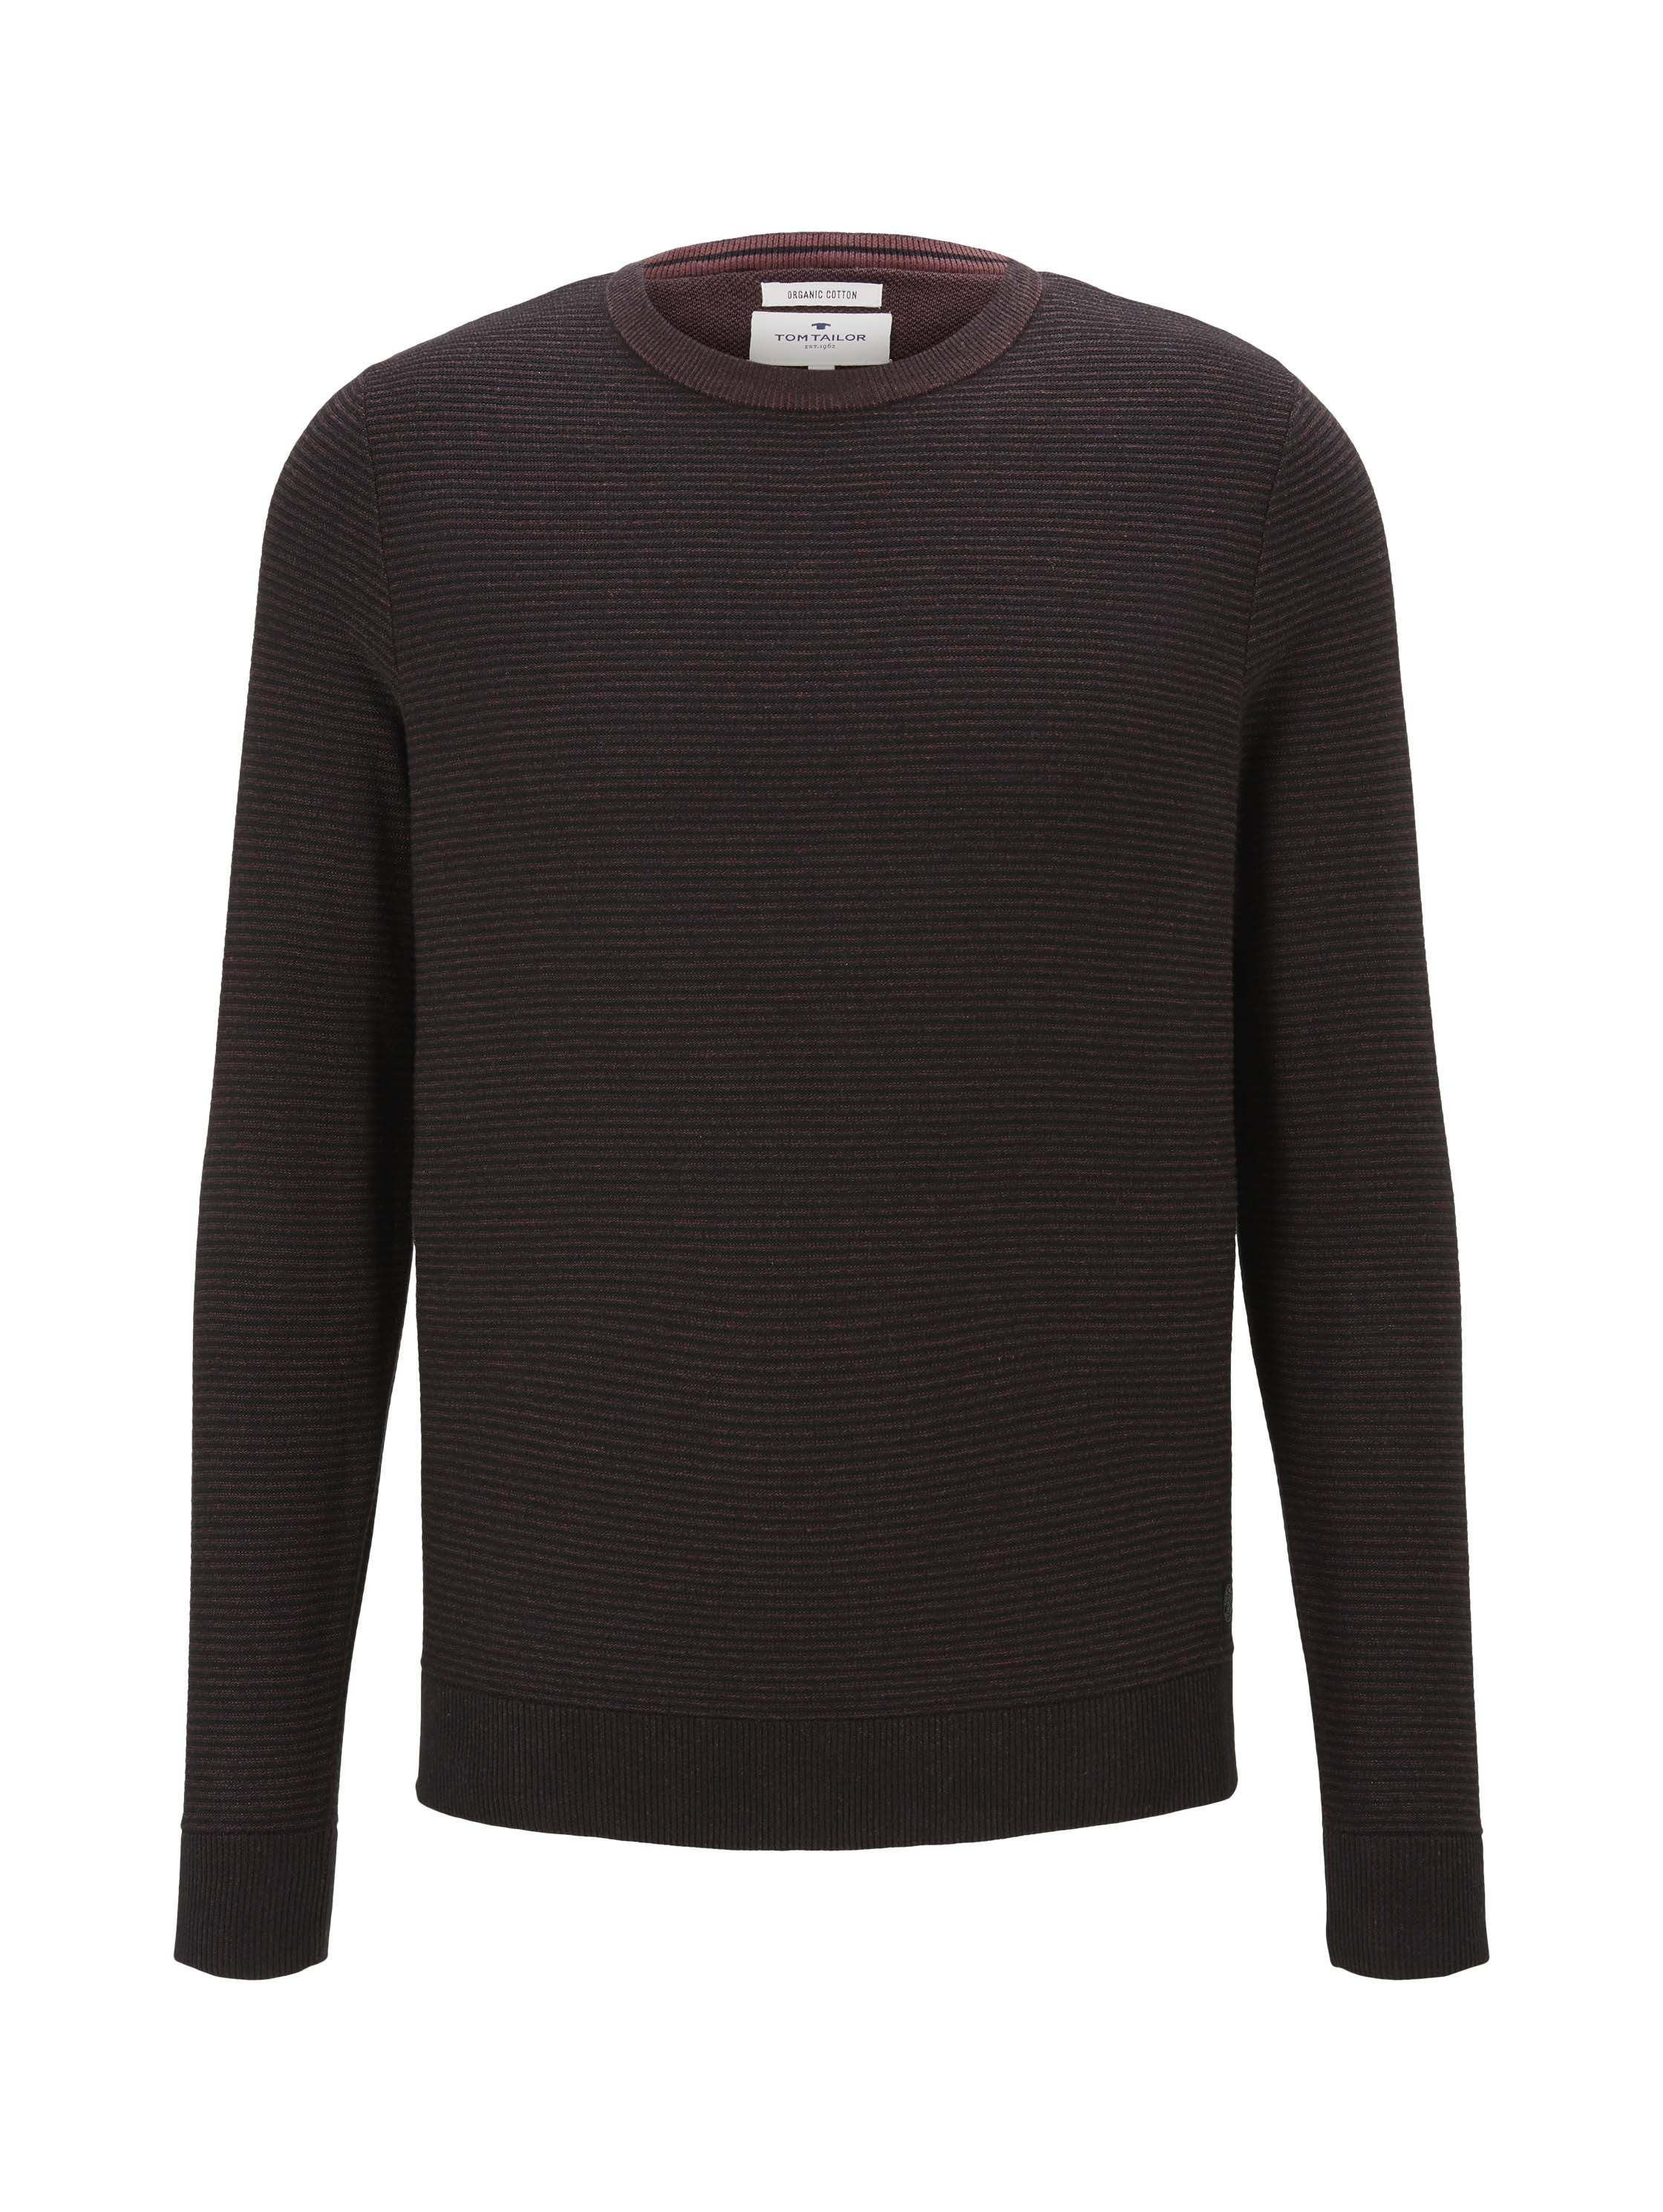 modern basic structure sweater, Dusty Wildberry Red